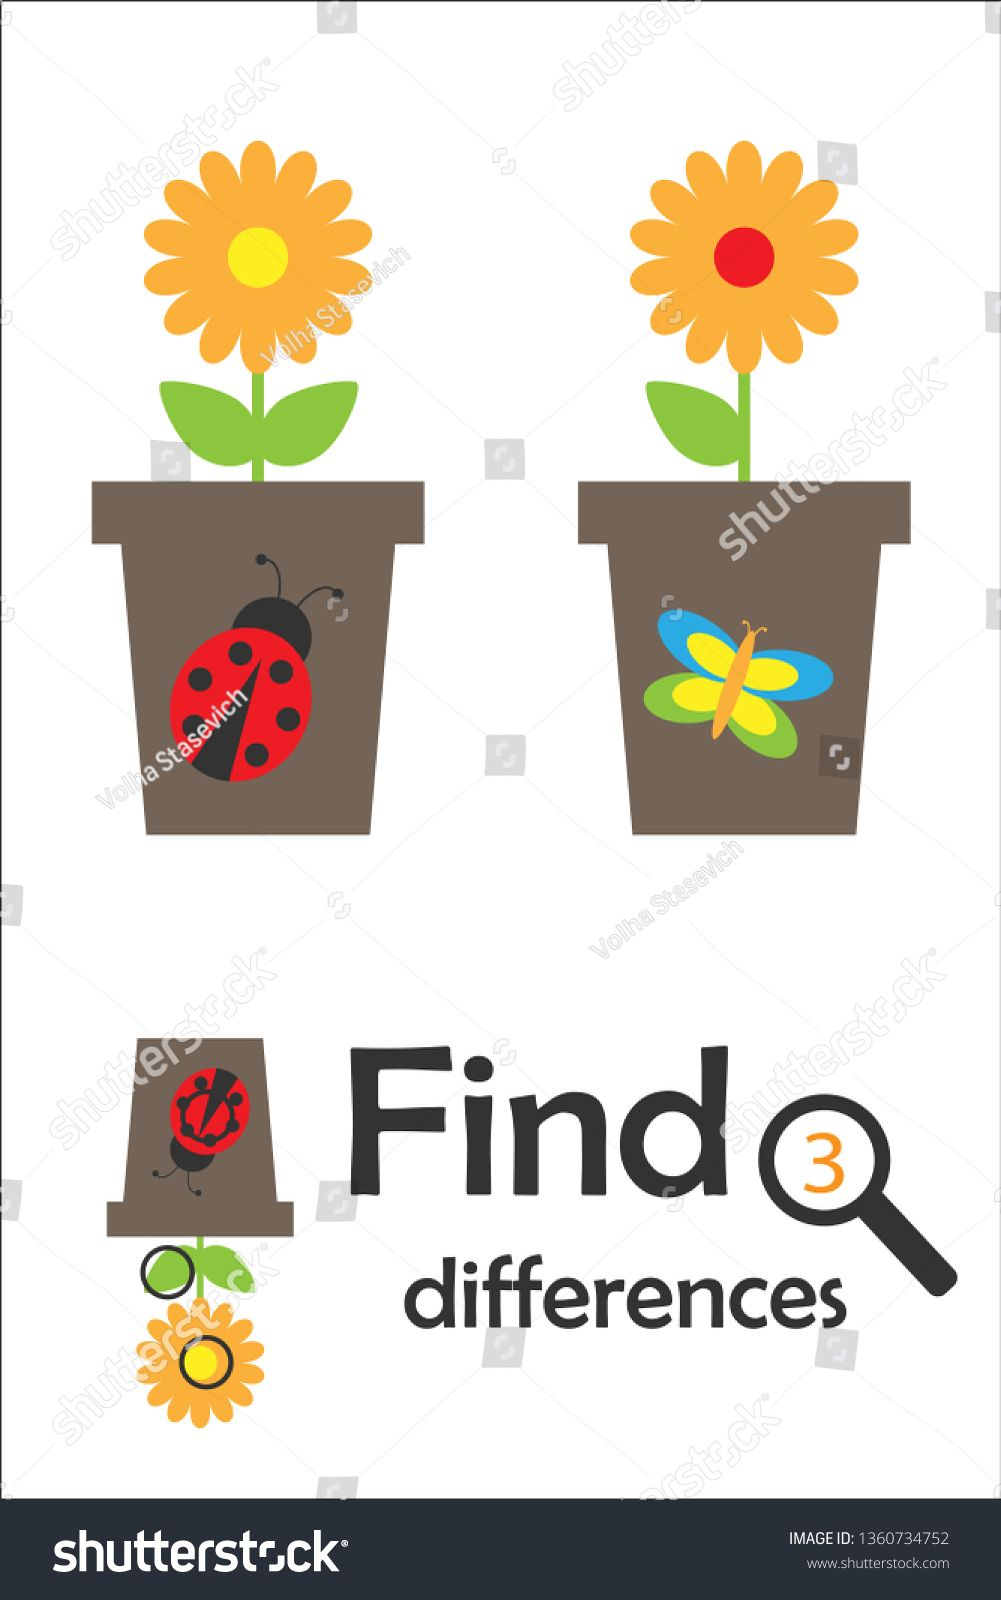 Find 3 Differences Game For Children Pot With Flower In Cartoon Style Education Game For Kids Educational Games For Kids Cartoon Styles Preschool Worksheets [ 1600 x 1001 Pixel ]